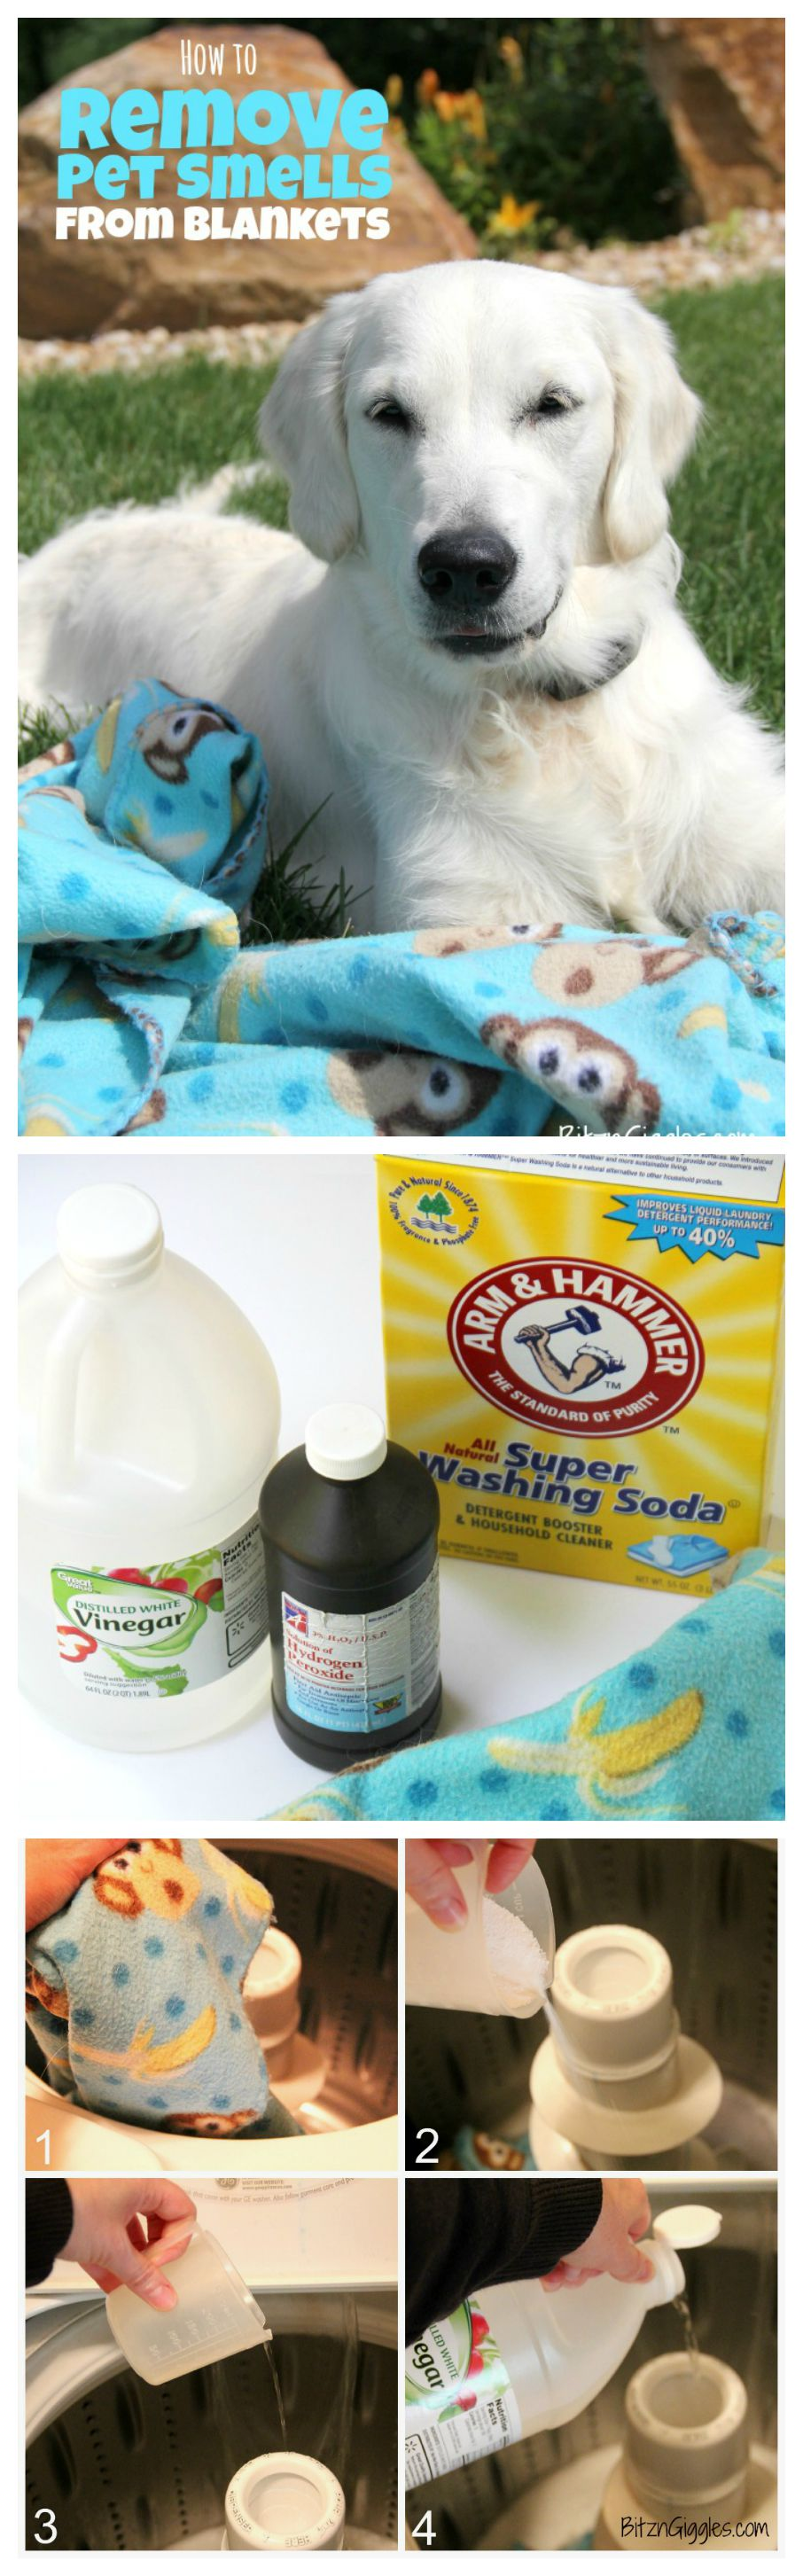 How To Get Urine Smell Out Of Clothes How To Remove Pet Smells From Blankets